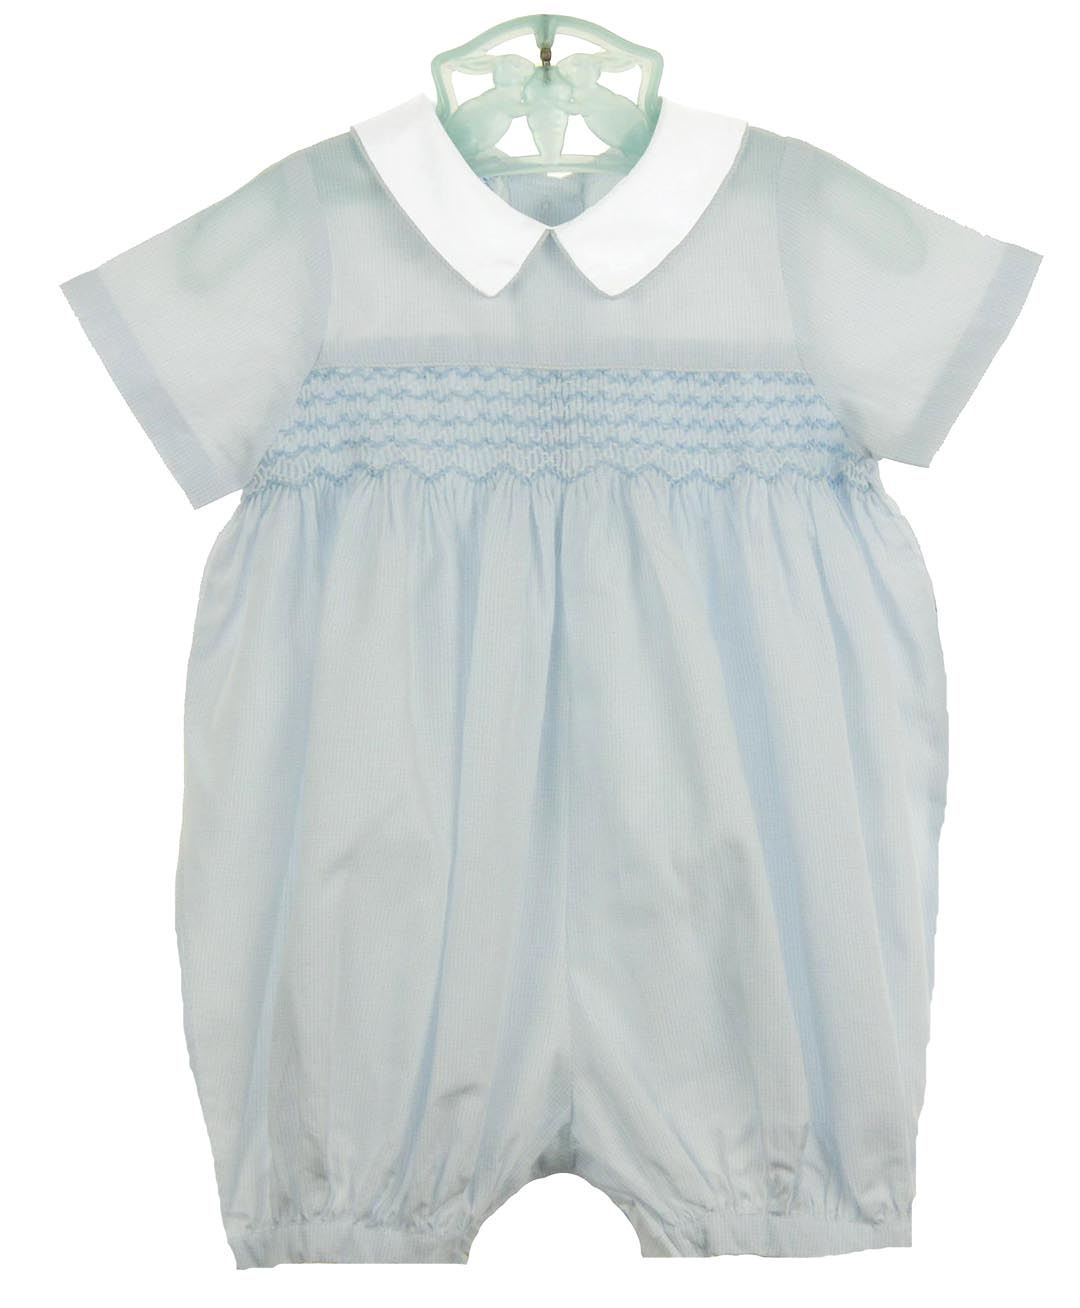 4f3734533ed NEW Sophie Dess Smocked Cotton Romper with Tiny Blue Checks and White Collar